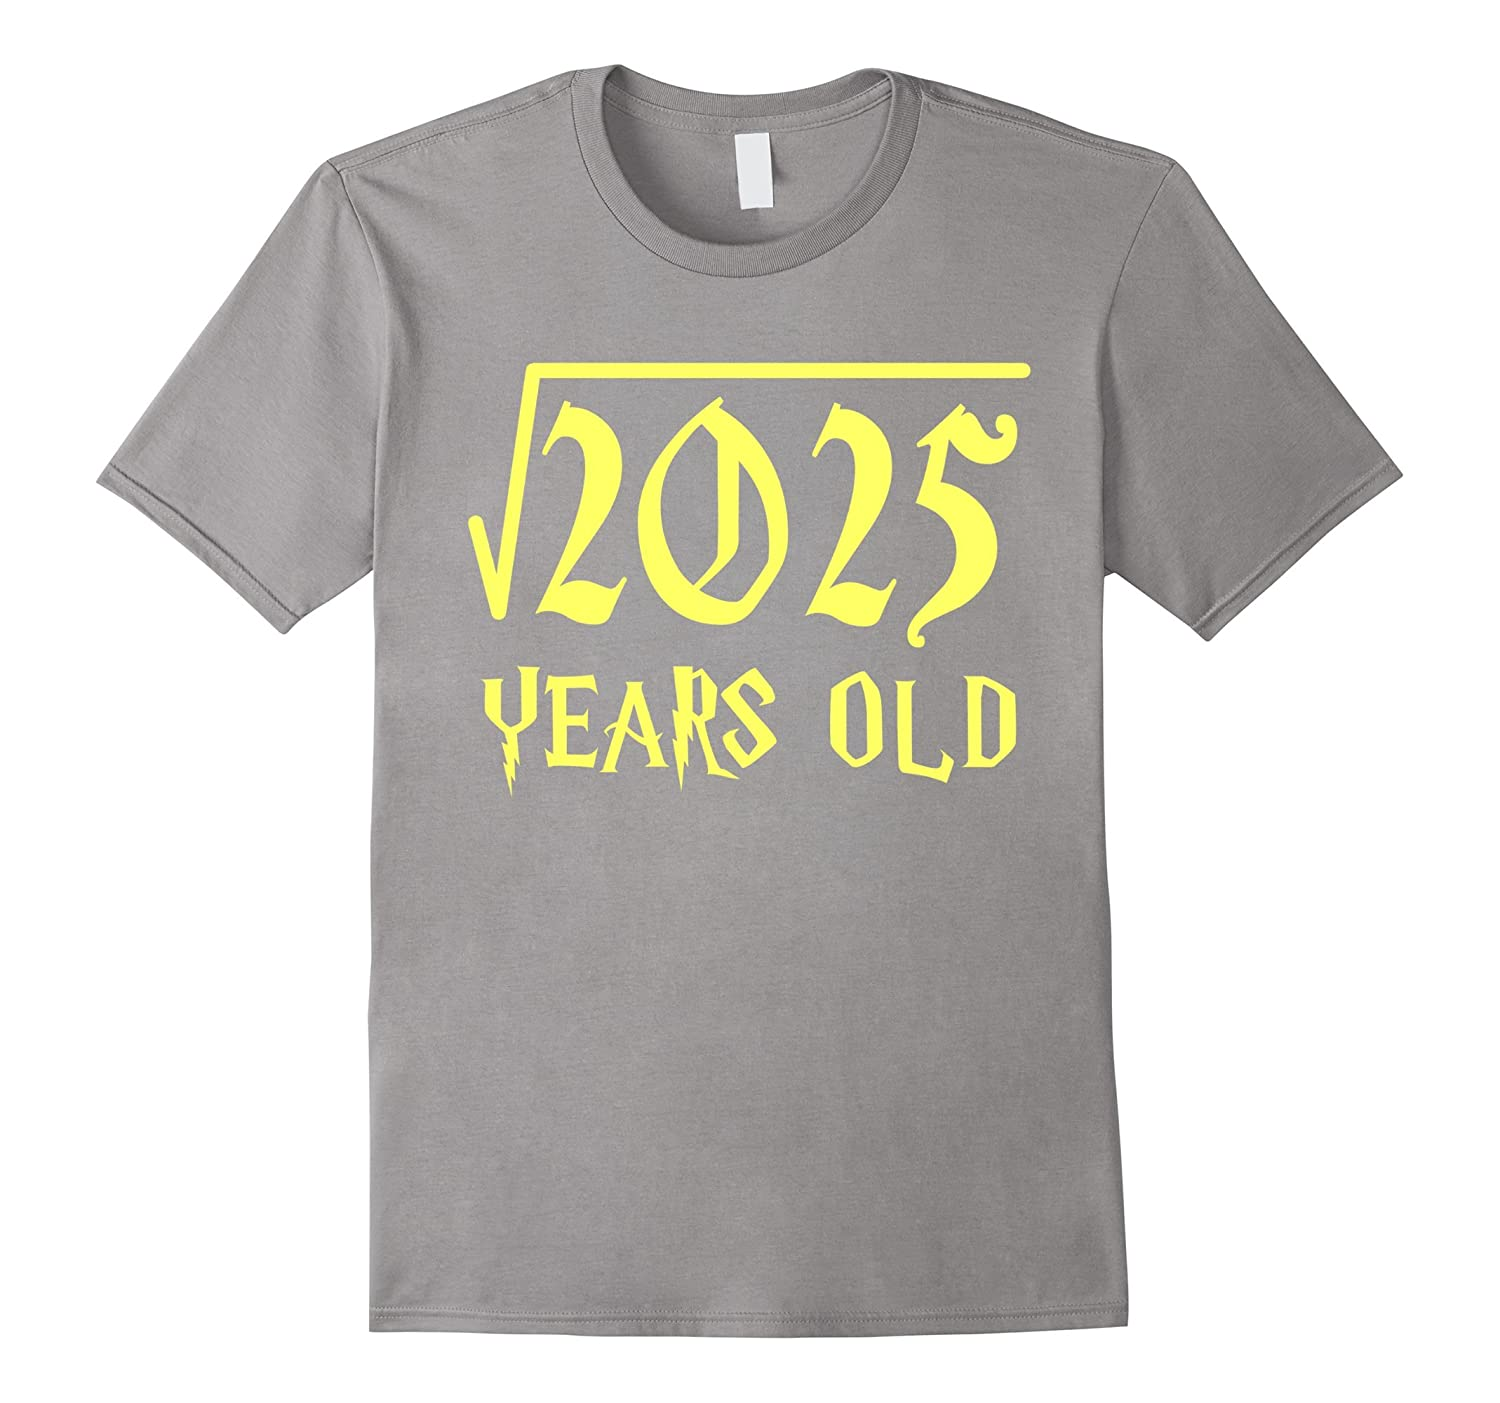 Square Root Of 2025 45 Years Old 45th Birthday T Shirt CL